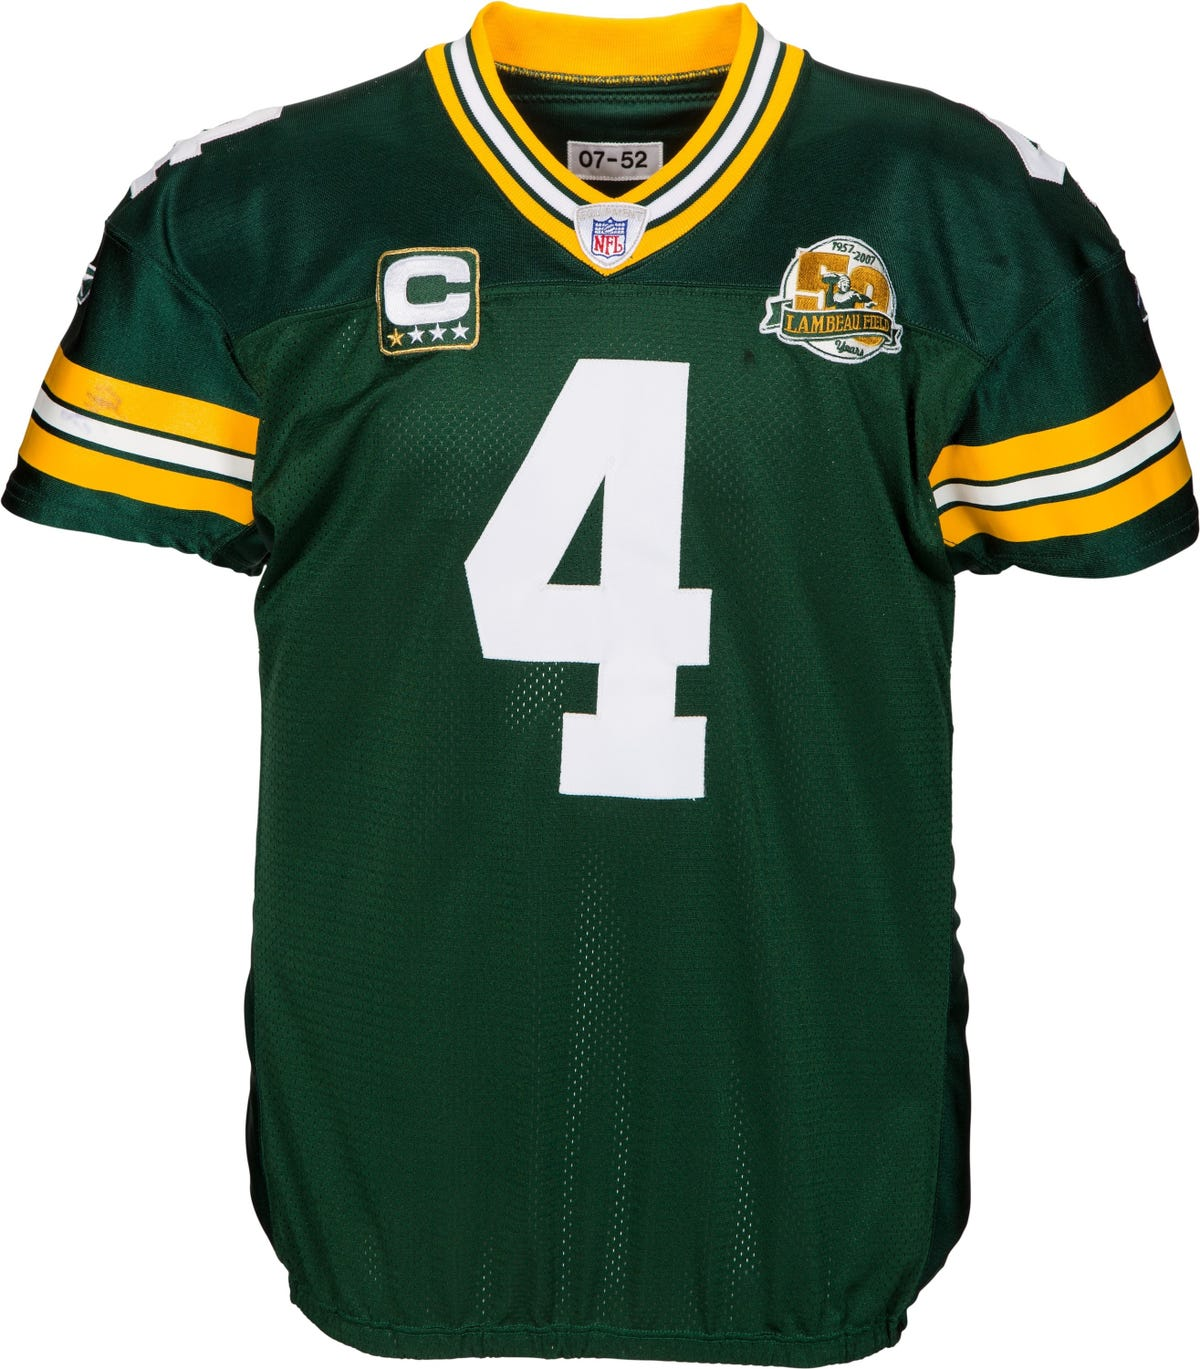 dcad5ecd Historic Brett Favre jerseys to be auctioned